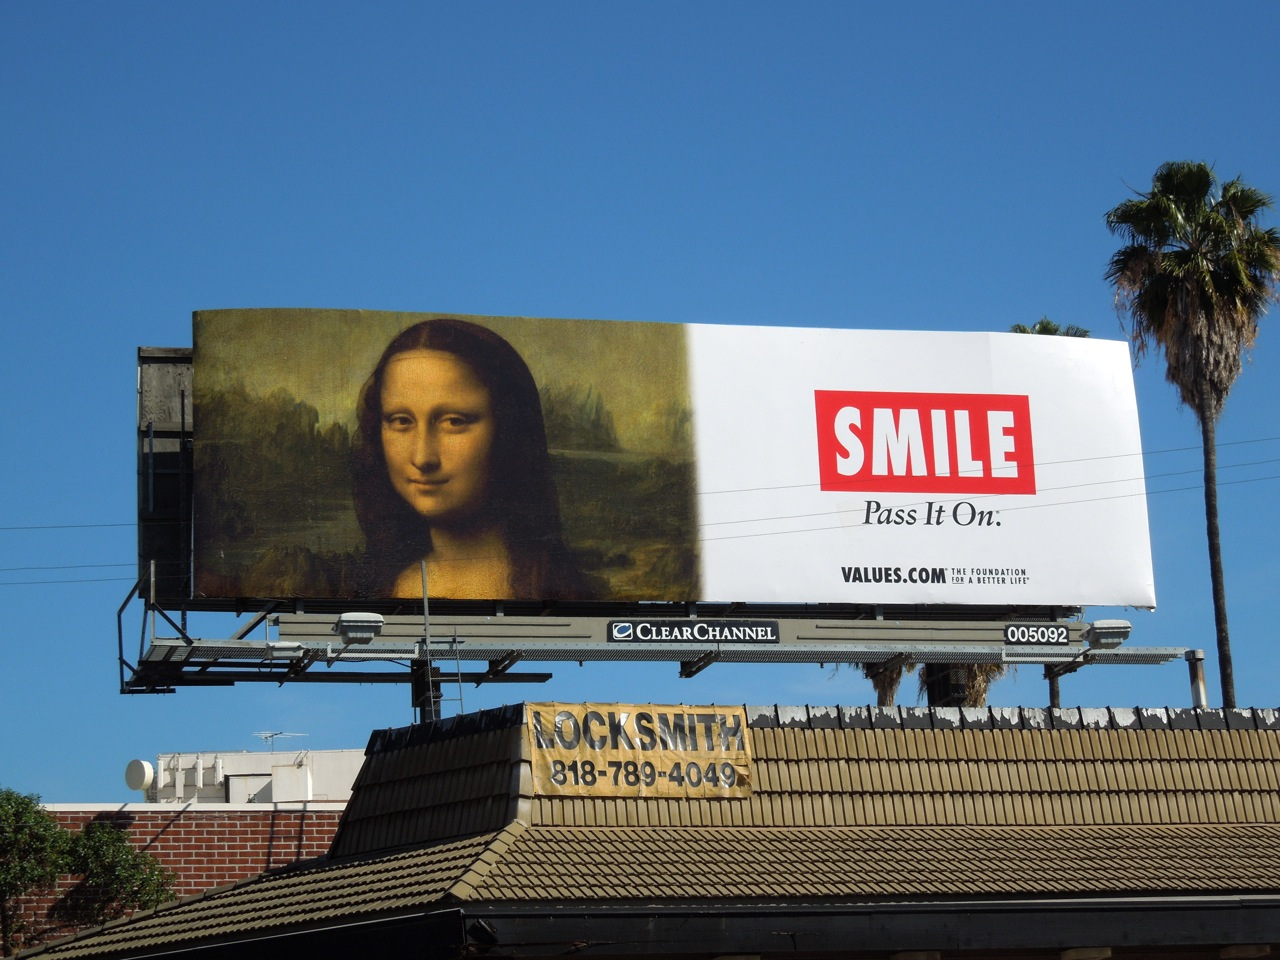 Crest Sensitivity Ads By Publicis New York moreover Audience Profile 5207463 as well Microsoft Teams besides Guerrilla Marketing Pr Stunt  pany Creative Ex les New York City Fashion Week together with Brilliant Creative Billboard Advertisements. on billboard advertising examples